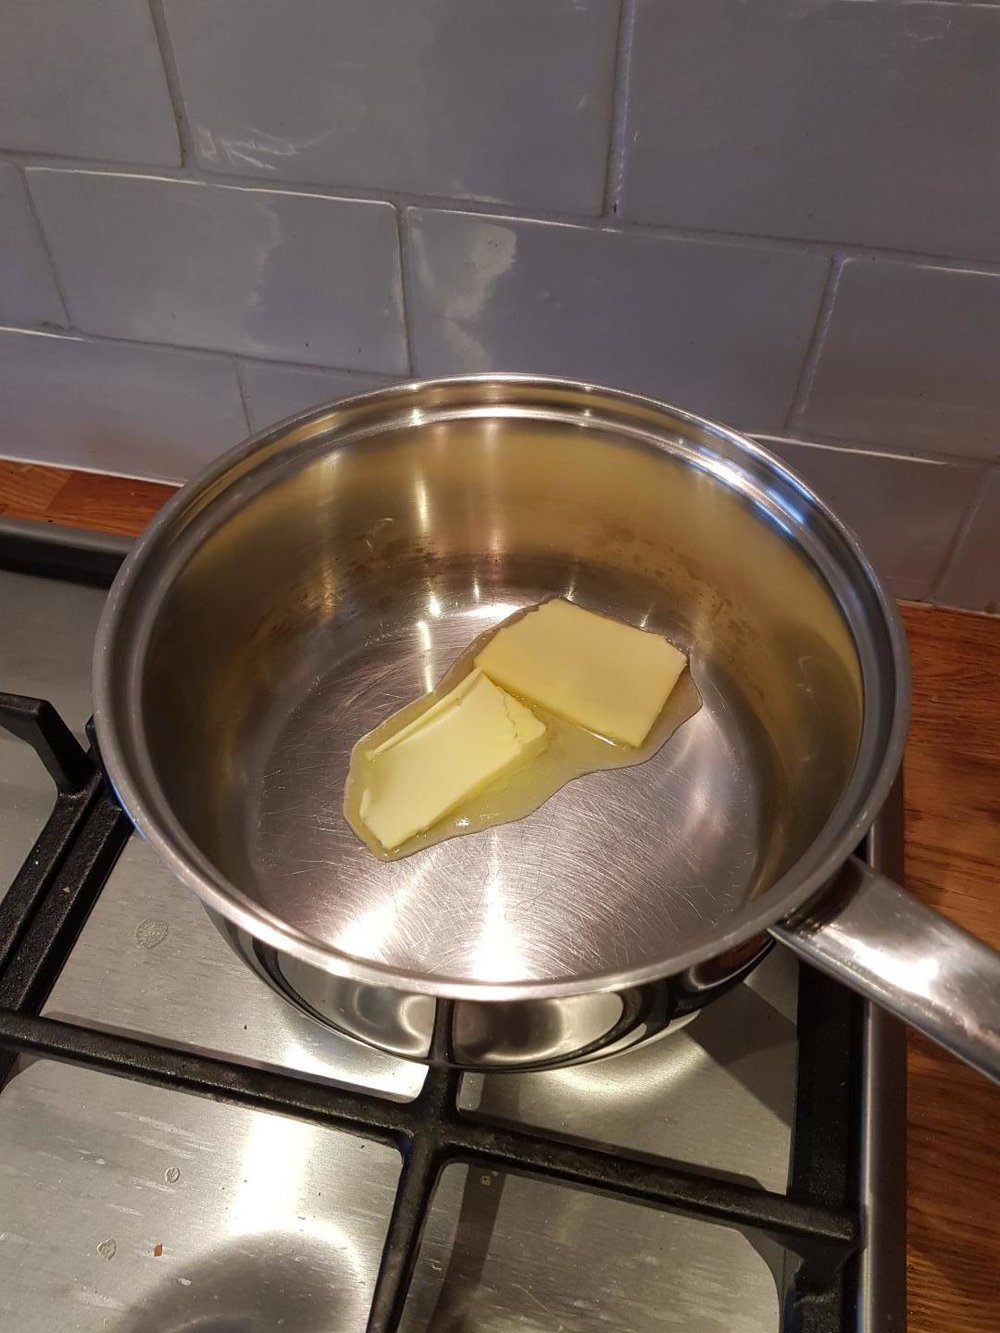 1: Put a knob of butter in the pan.